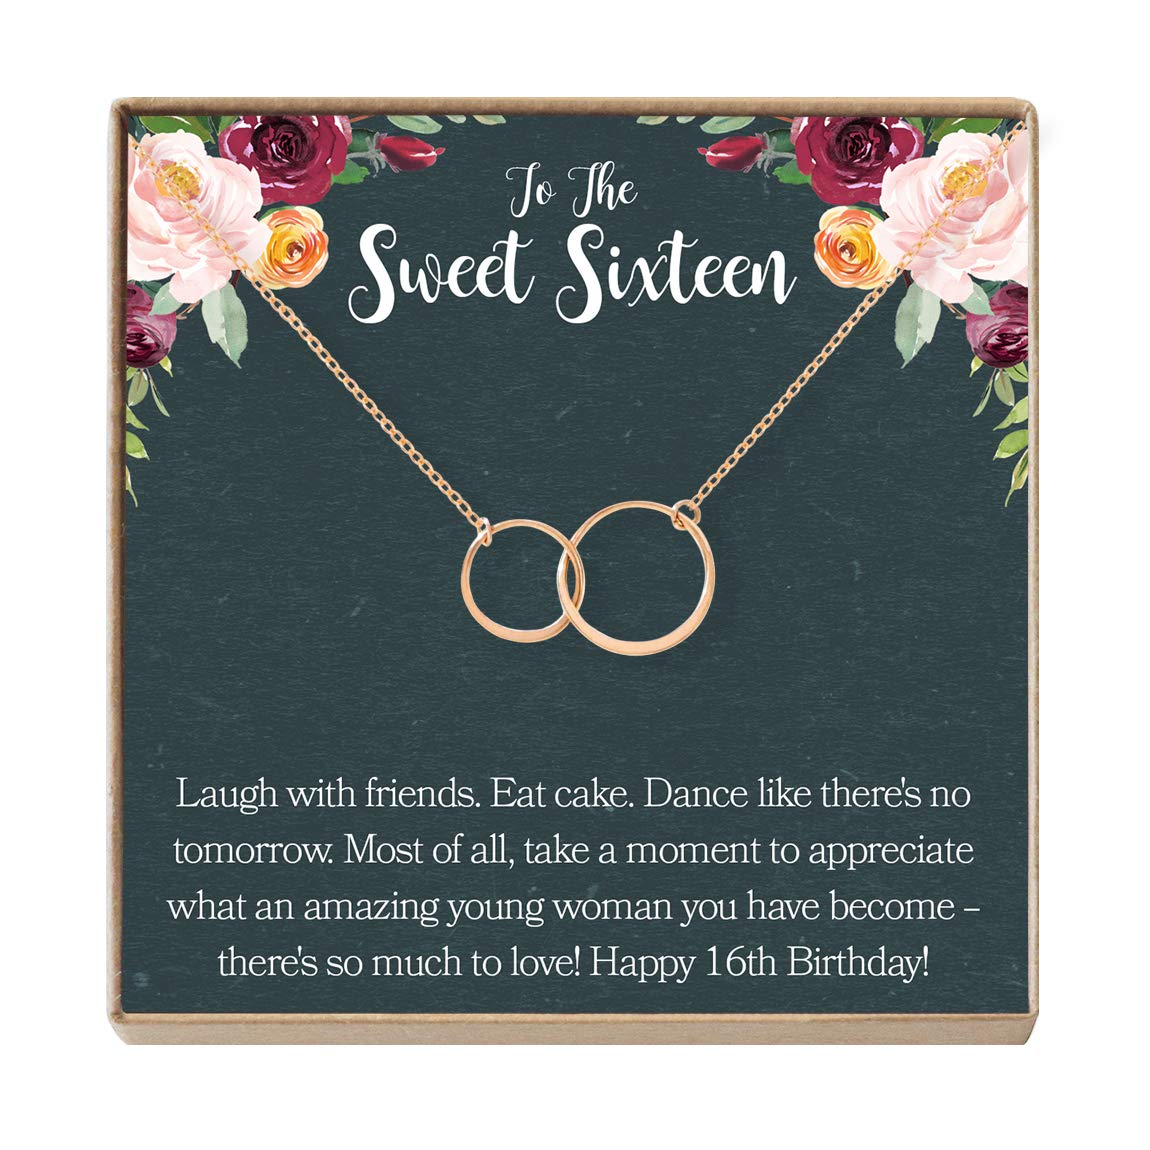 Dear Ava Sweet 16 Gift Necklace Sweet Sixteen 16th Birthday Gift For Her 2 Asymmetrical Circles Buy Online In South Africa At Desertcart